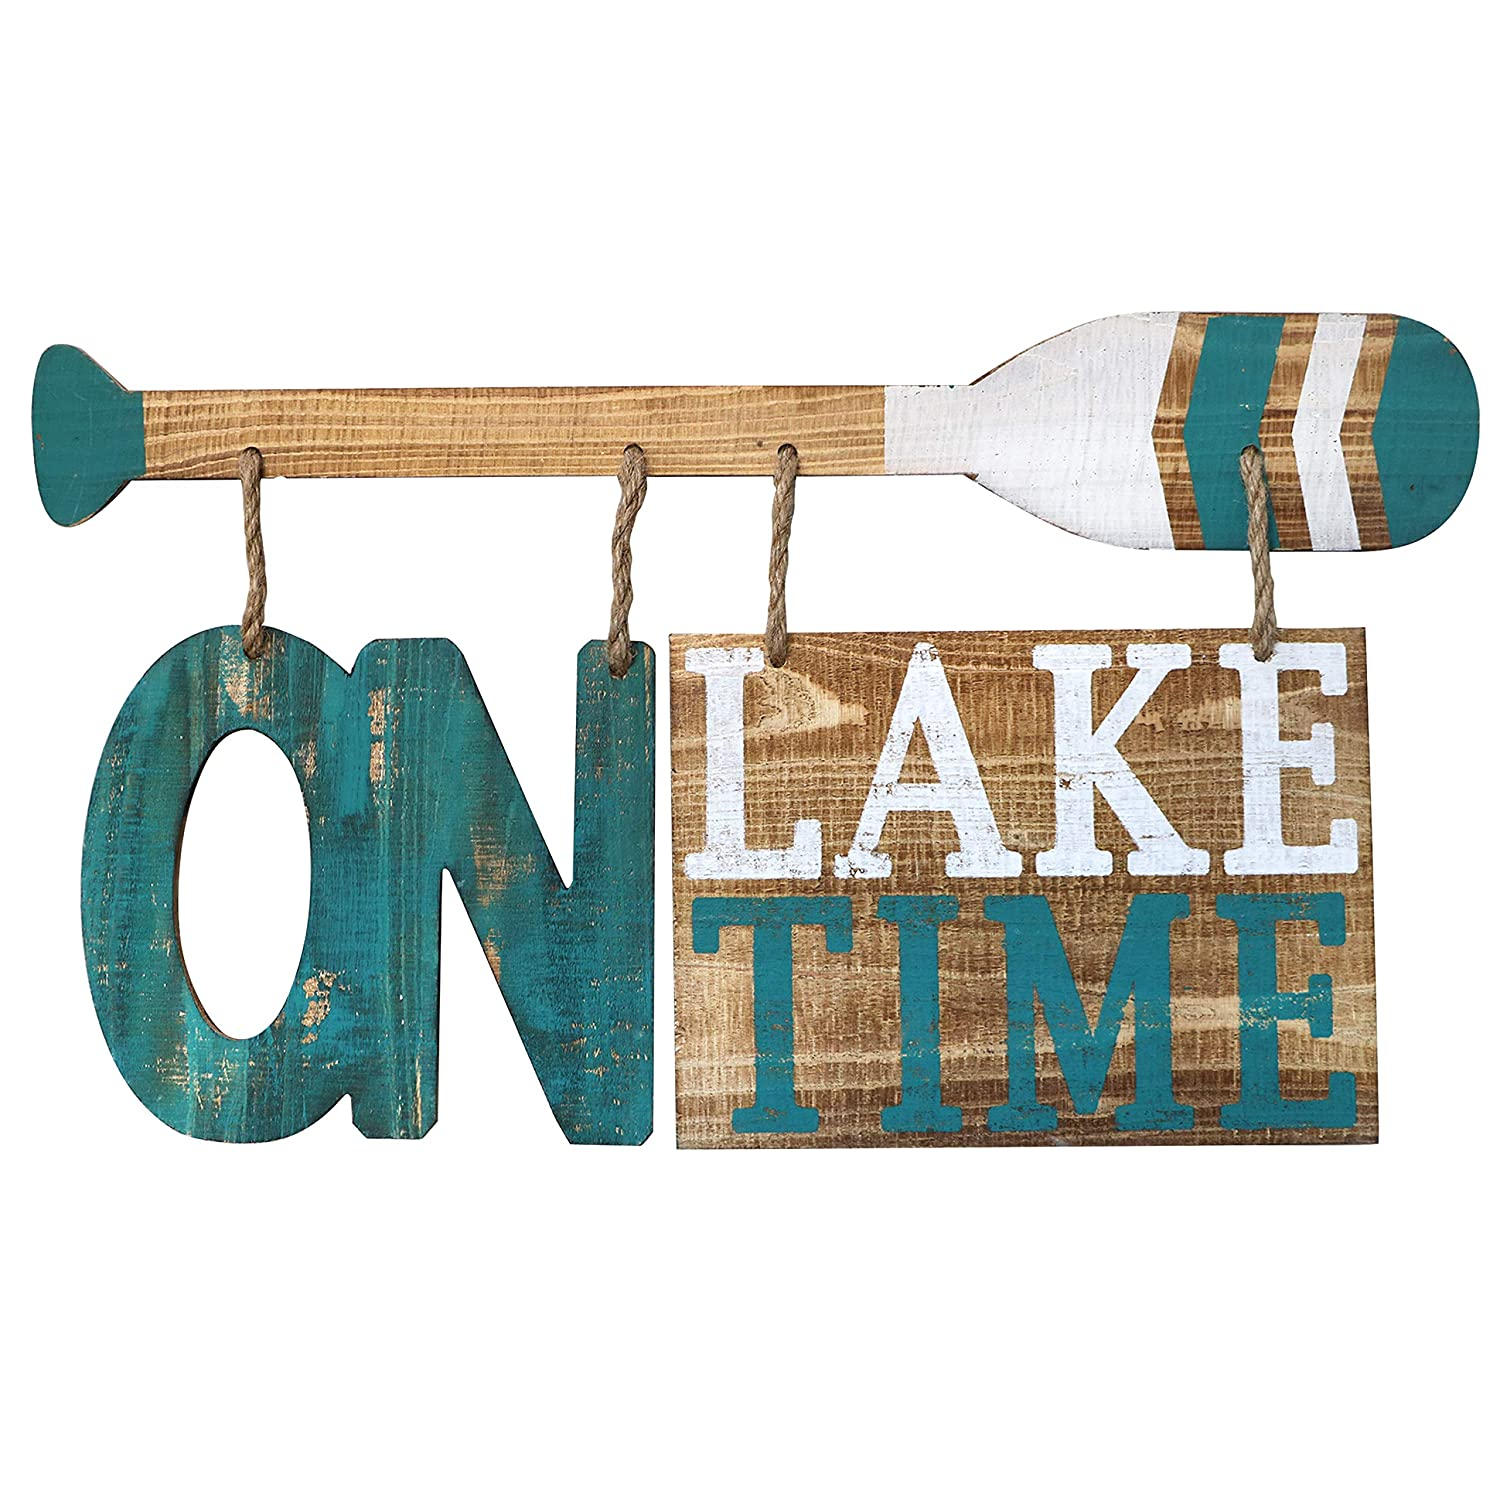 "Barnyard Designs On Lake Time Wooden Sign Rustic Vintage Primitive Lake House Home Decor Sign 23.75"" x 13"""